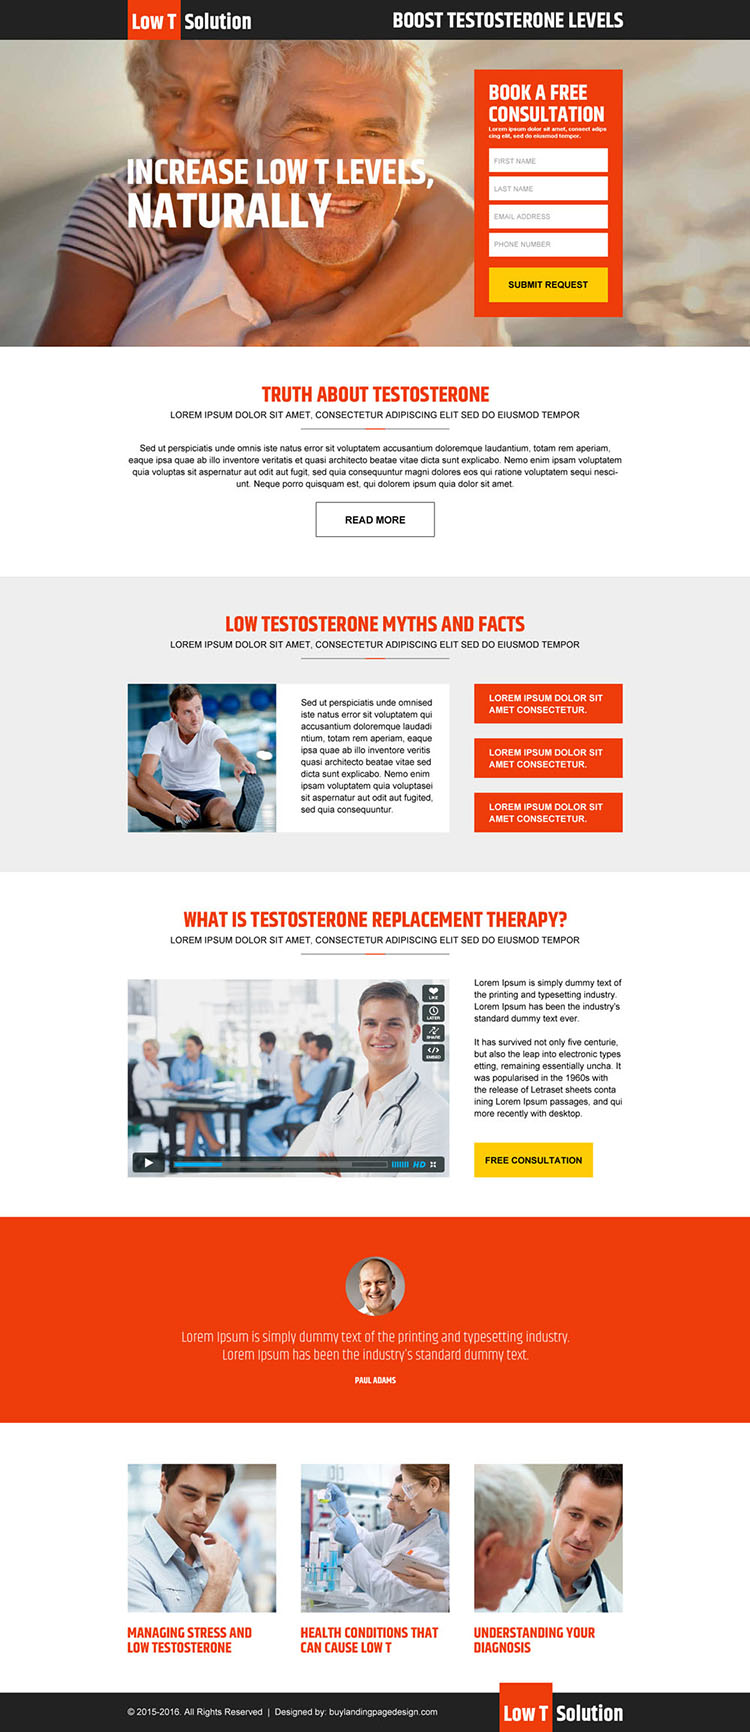 boost testosterone levels responsive landing page design